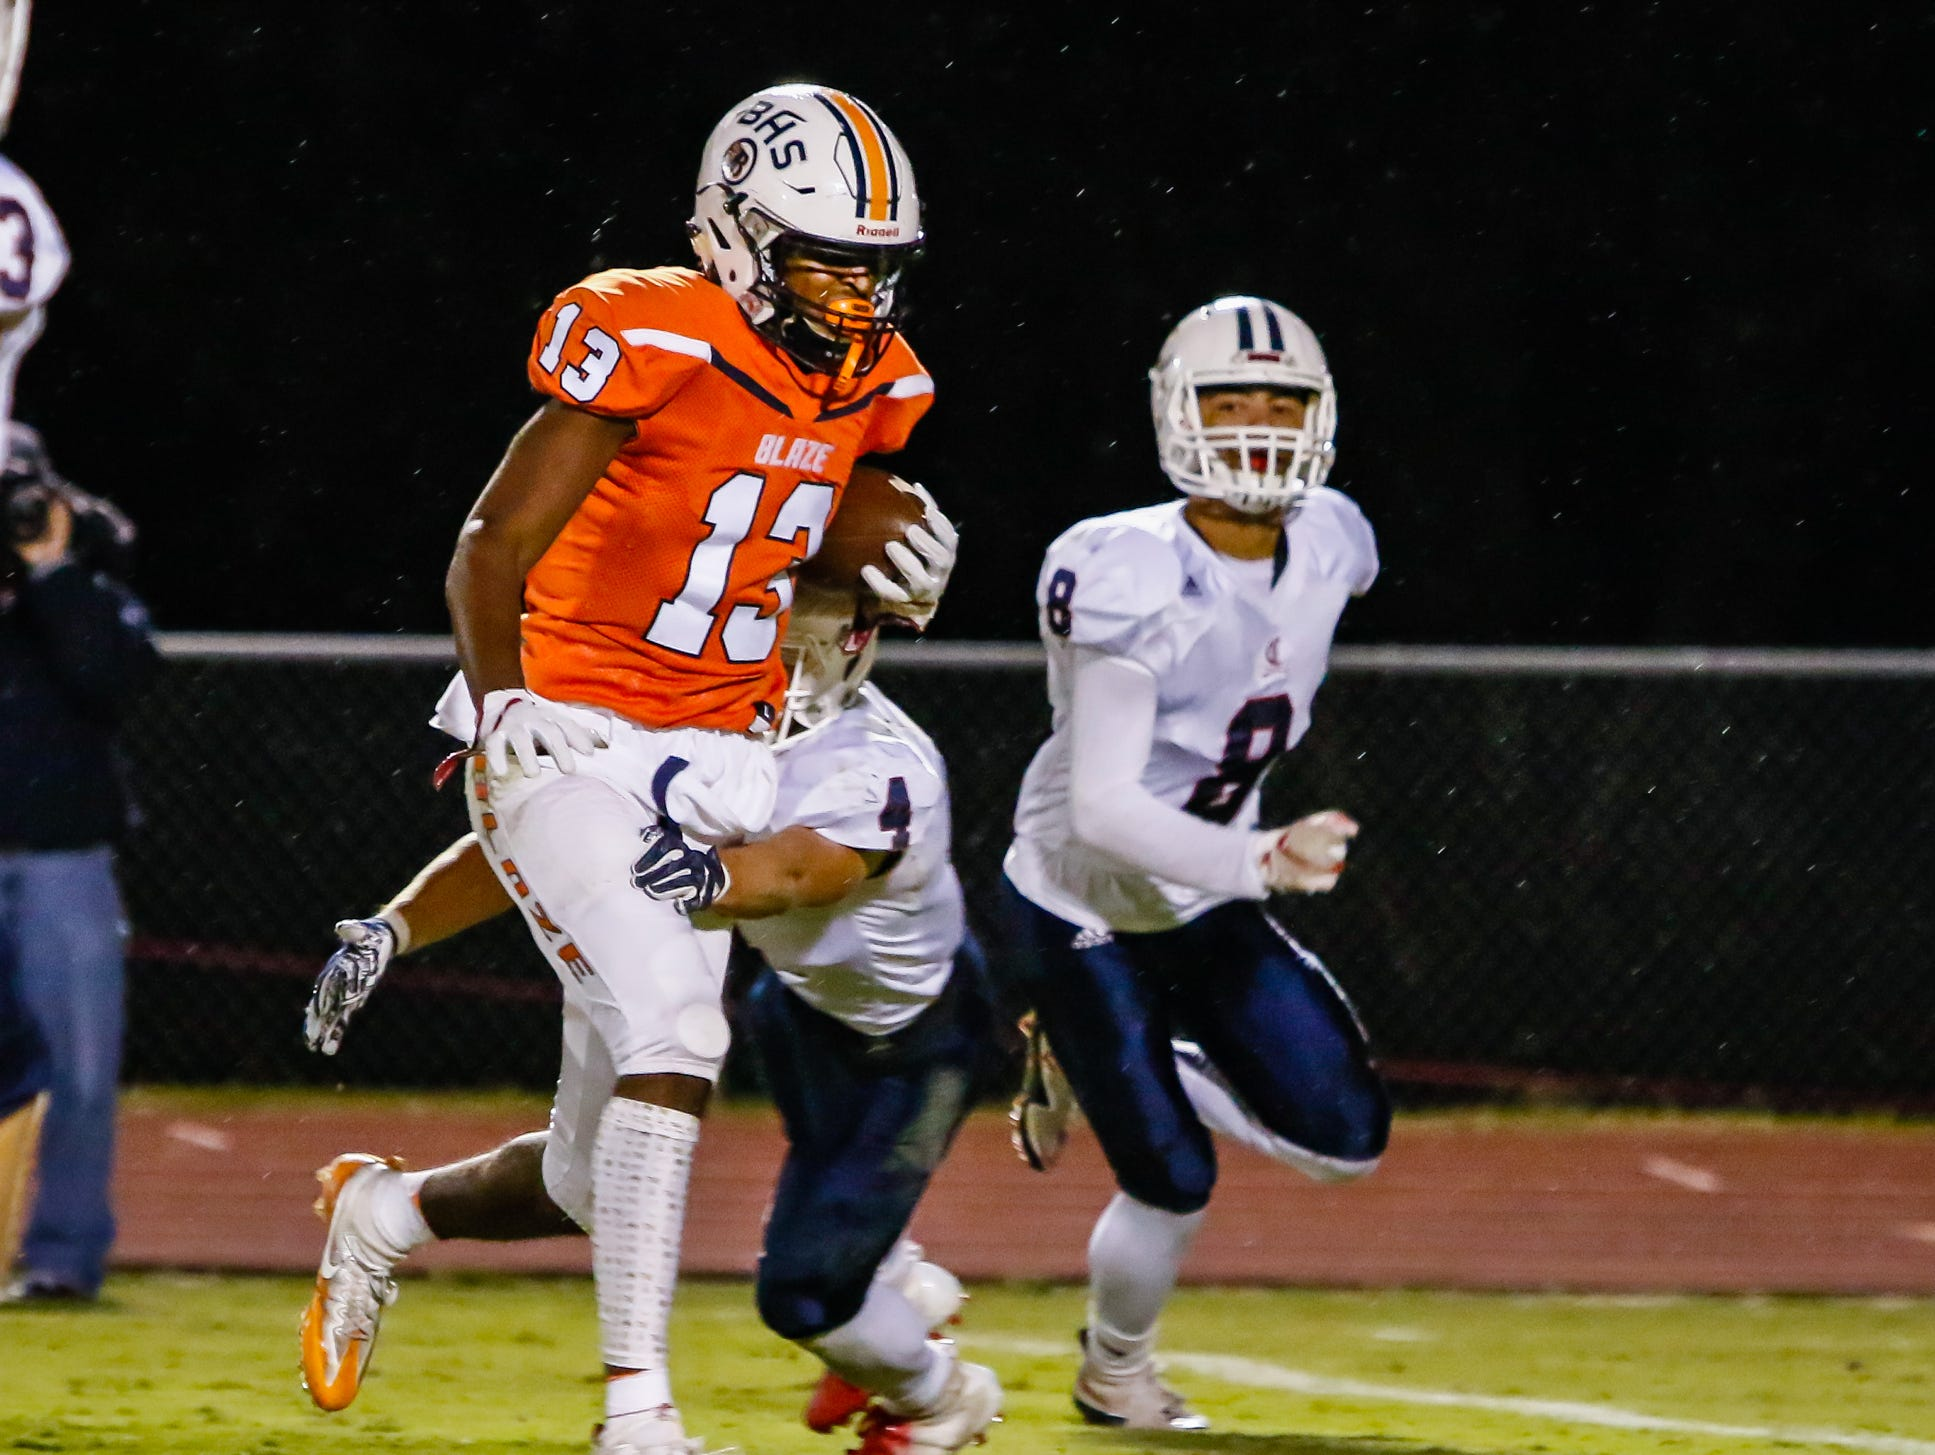 Blackman's Trey Knox runs through Cookeville defenders.